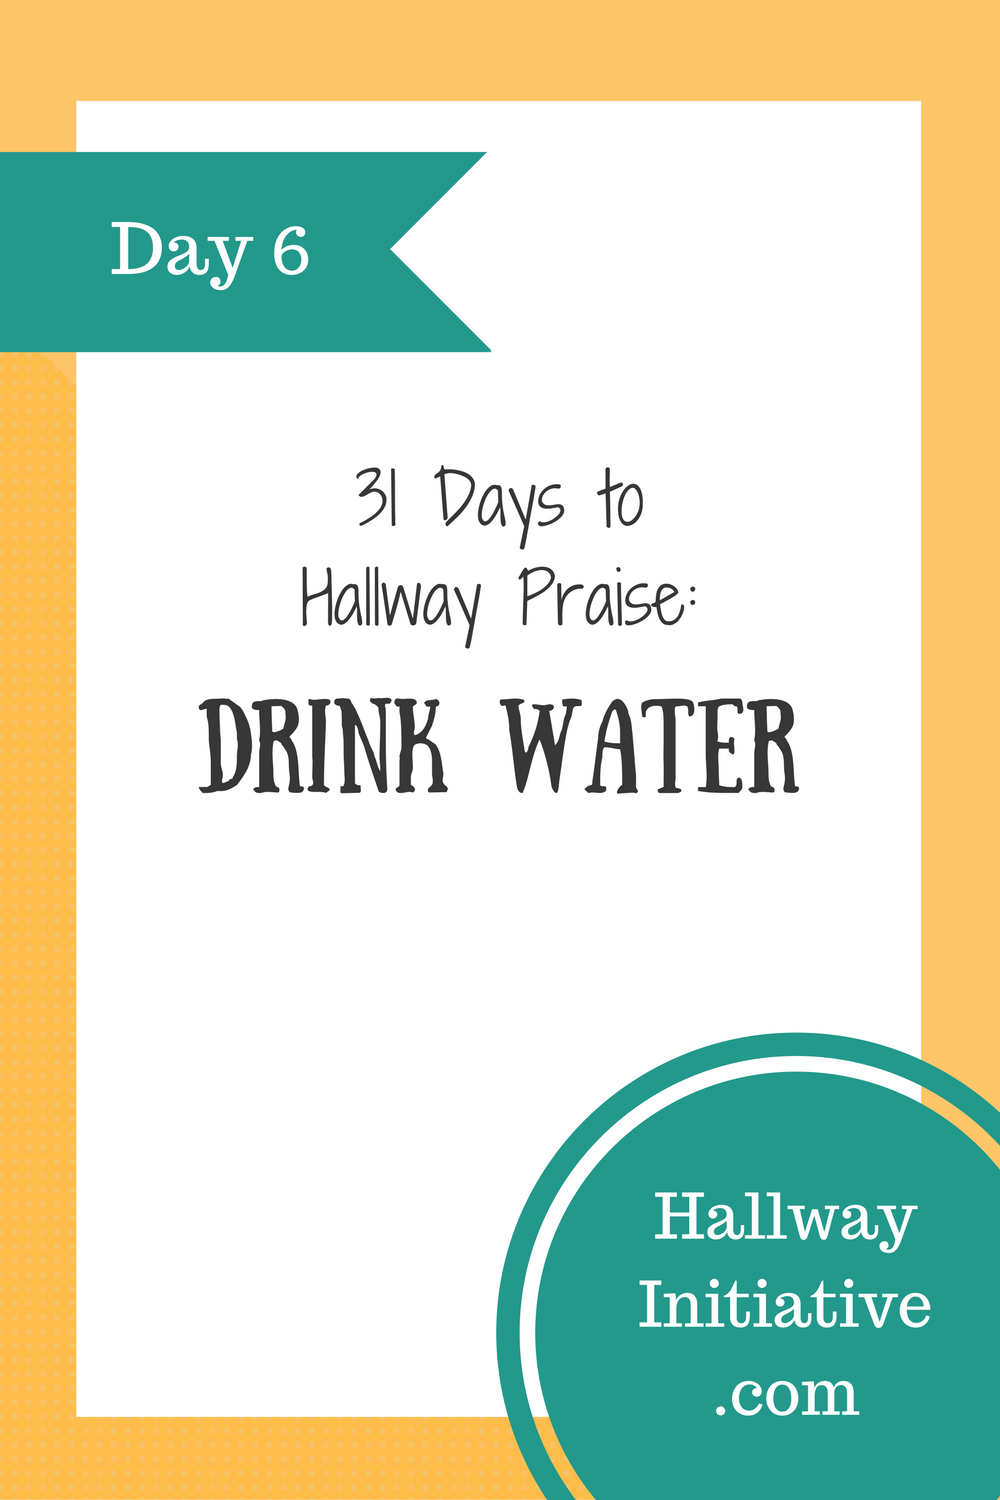 Day 6: drink water